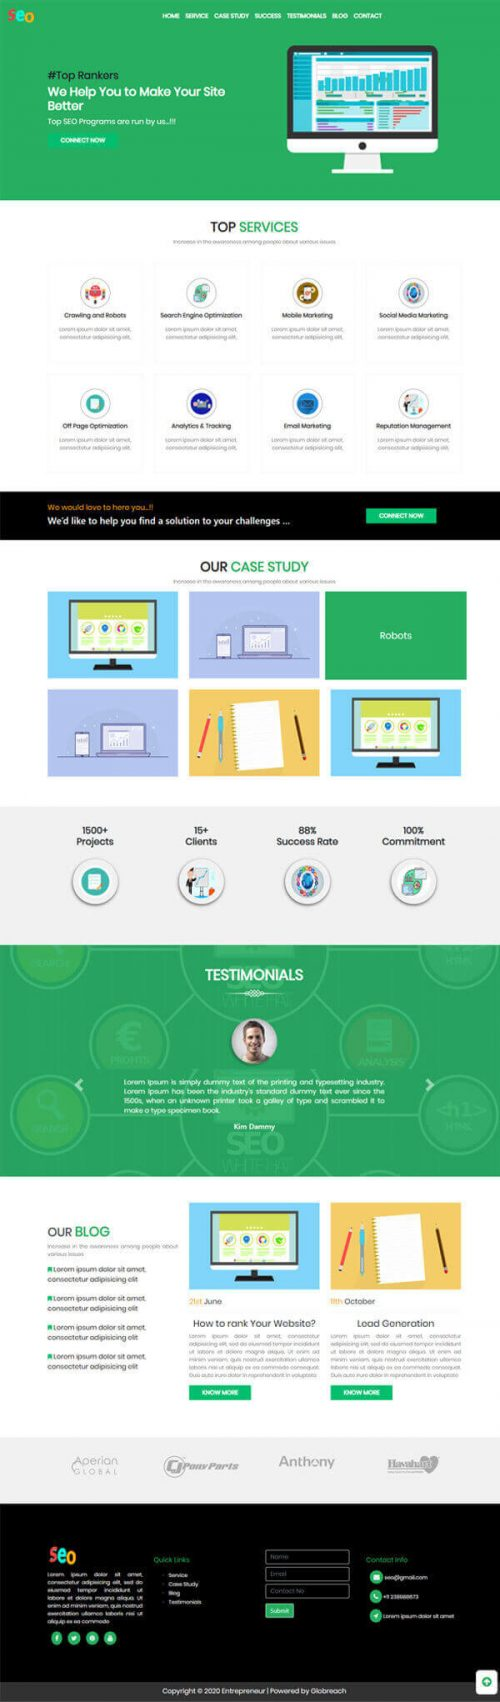 Spot- Online Marketer | Working professional website template.